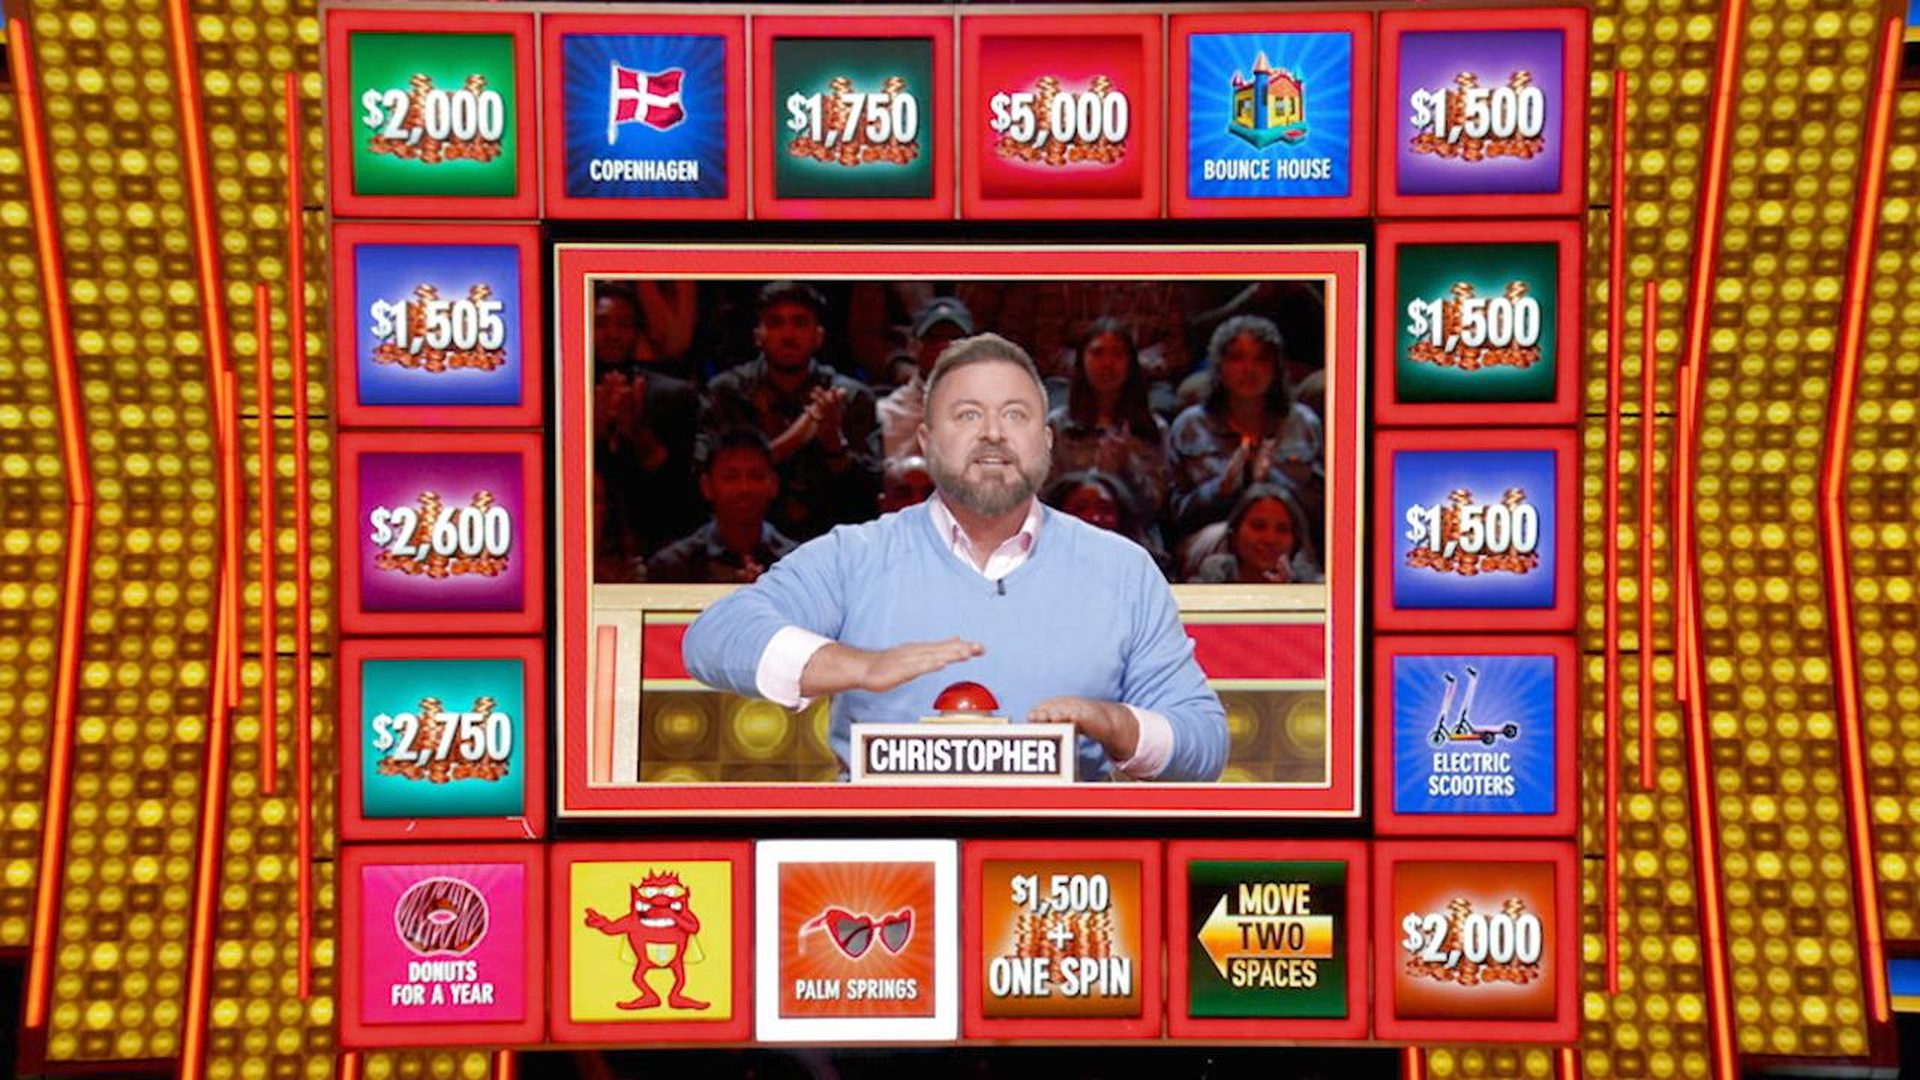 Where is press your luck filmed